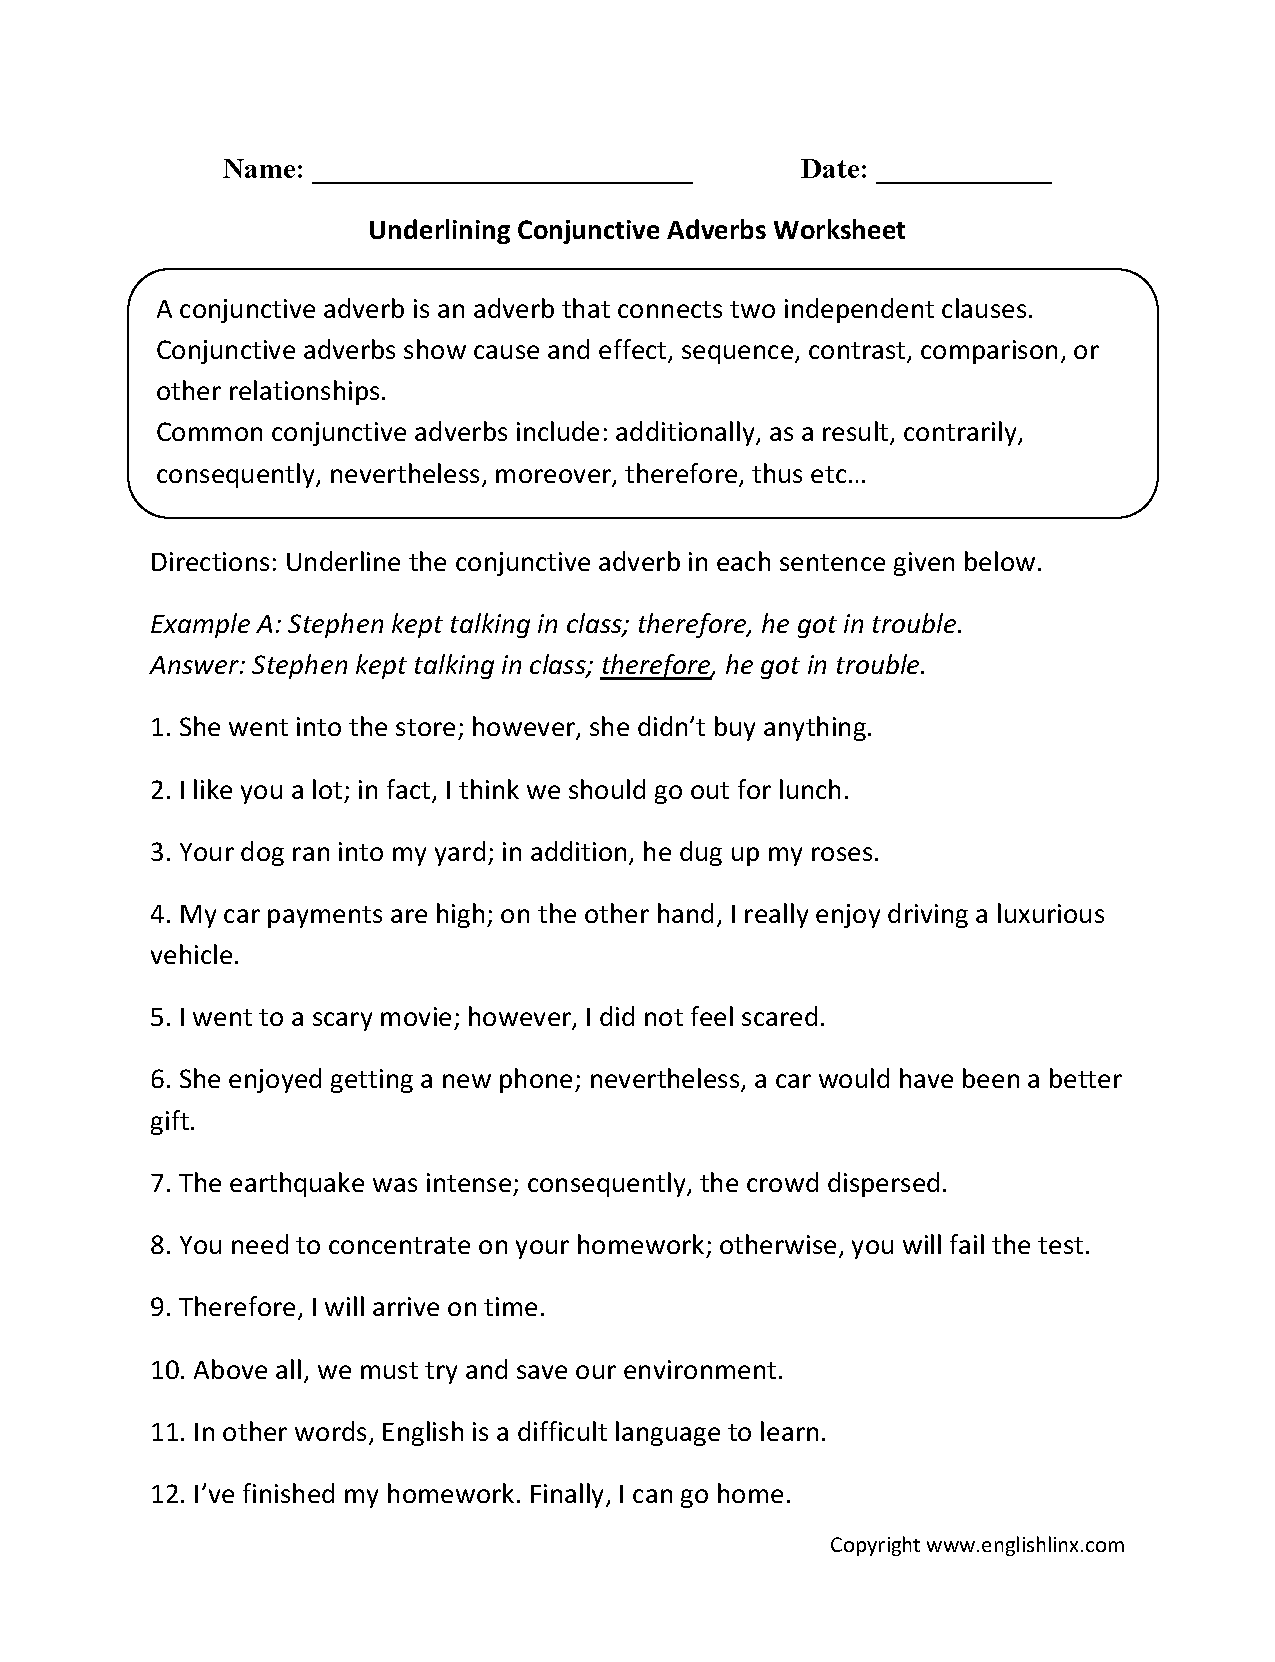 Weirdmailus  Gorgeous Englishlinxcom  Conjunctions Worksheets With Extraordinary Worksheet With Comely Plant Growth Worksheets Also Free Worksheets For Th Graders In Addition Mnemonic Worksheets And Beginning Decimals Worksheets As Well As Printable Spanish Worksheets For Kids Additionally Worksheet For Letter G From Englishlinxcom With Weirdmailus  Extraordinary Englishlinxcom  Conjunctions Worksheets With Comely Worksheet And Gorgeous Plant Growth Worksheets Also Free Worksheets For Th Graders In Addition Mnemonic Worksheets From Englishlinxcom